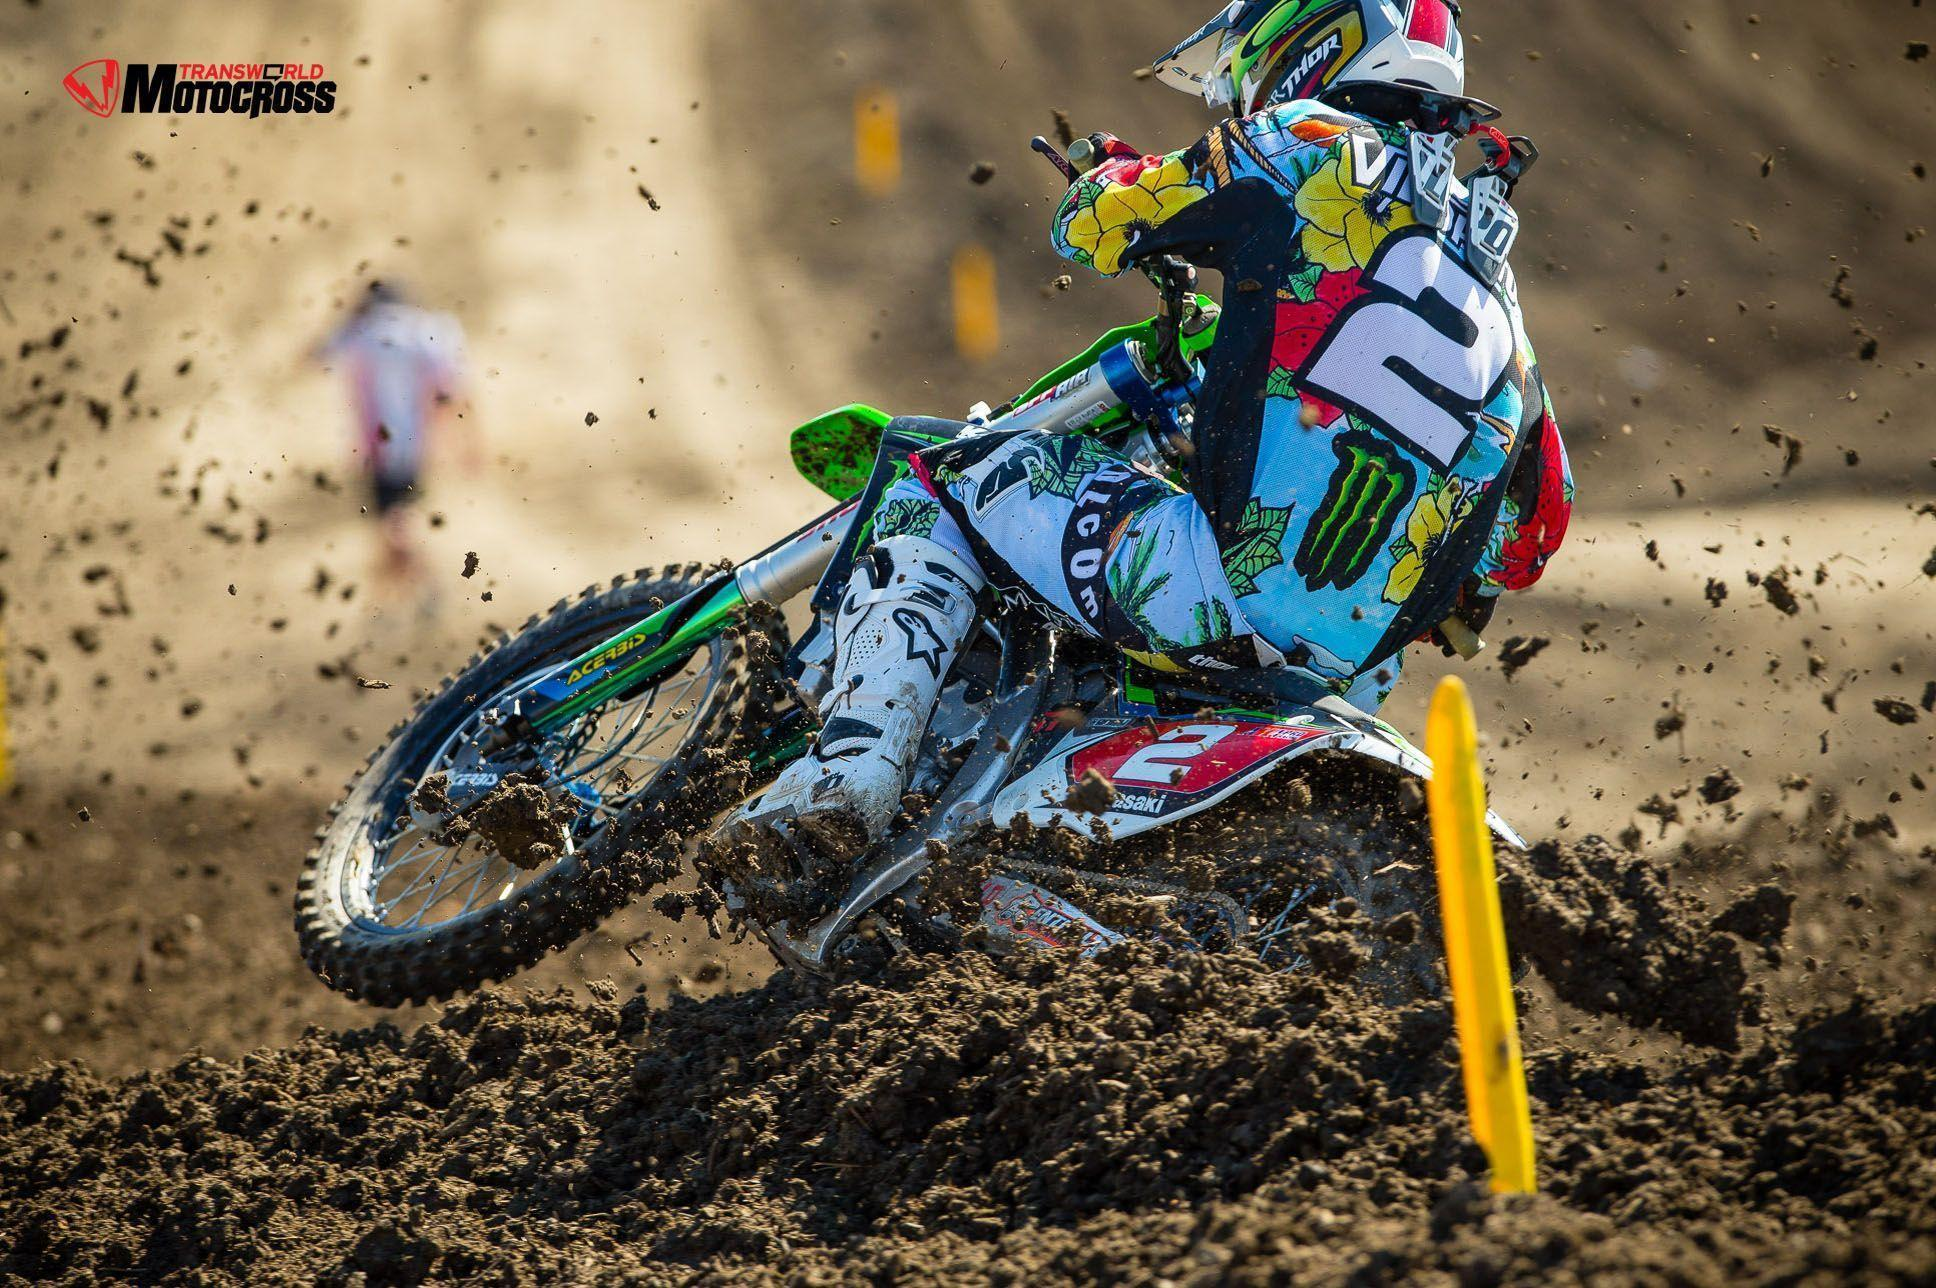 Motocross Wallpapers 2016 1936x1288